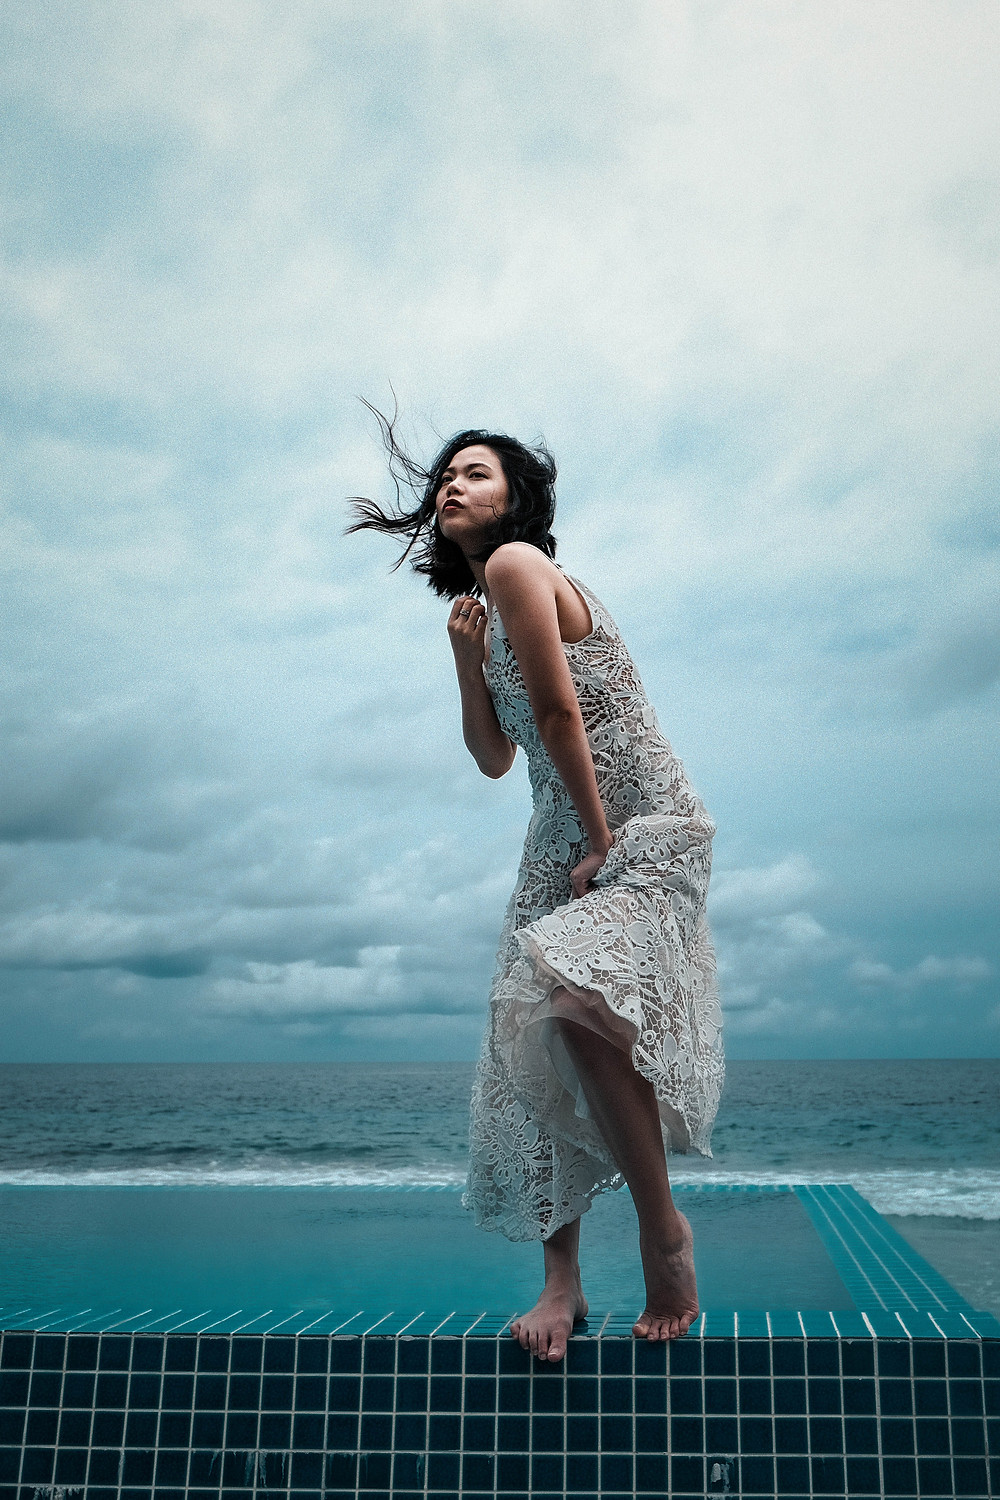 asian woman wearing a lacey cream dress dances on the edge of a pool with the wind whipping her hair in this shoot for trade image